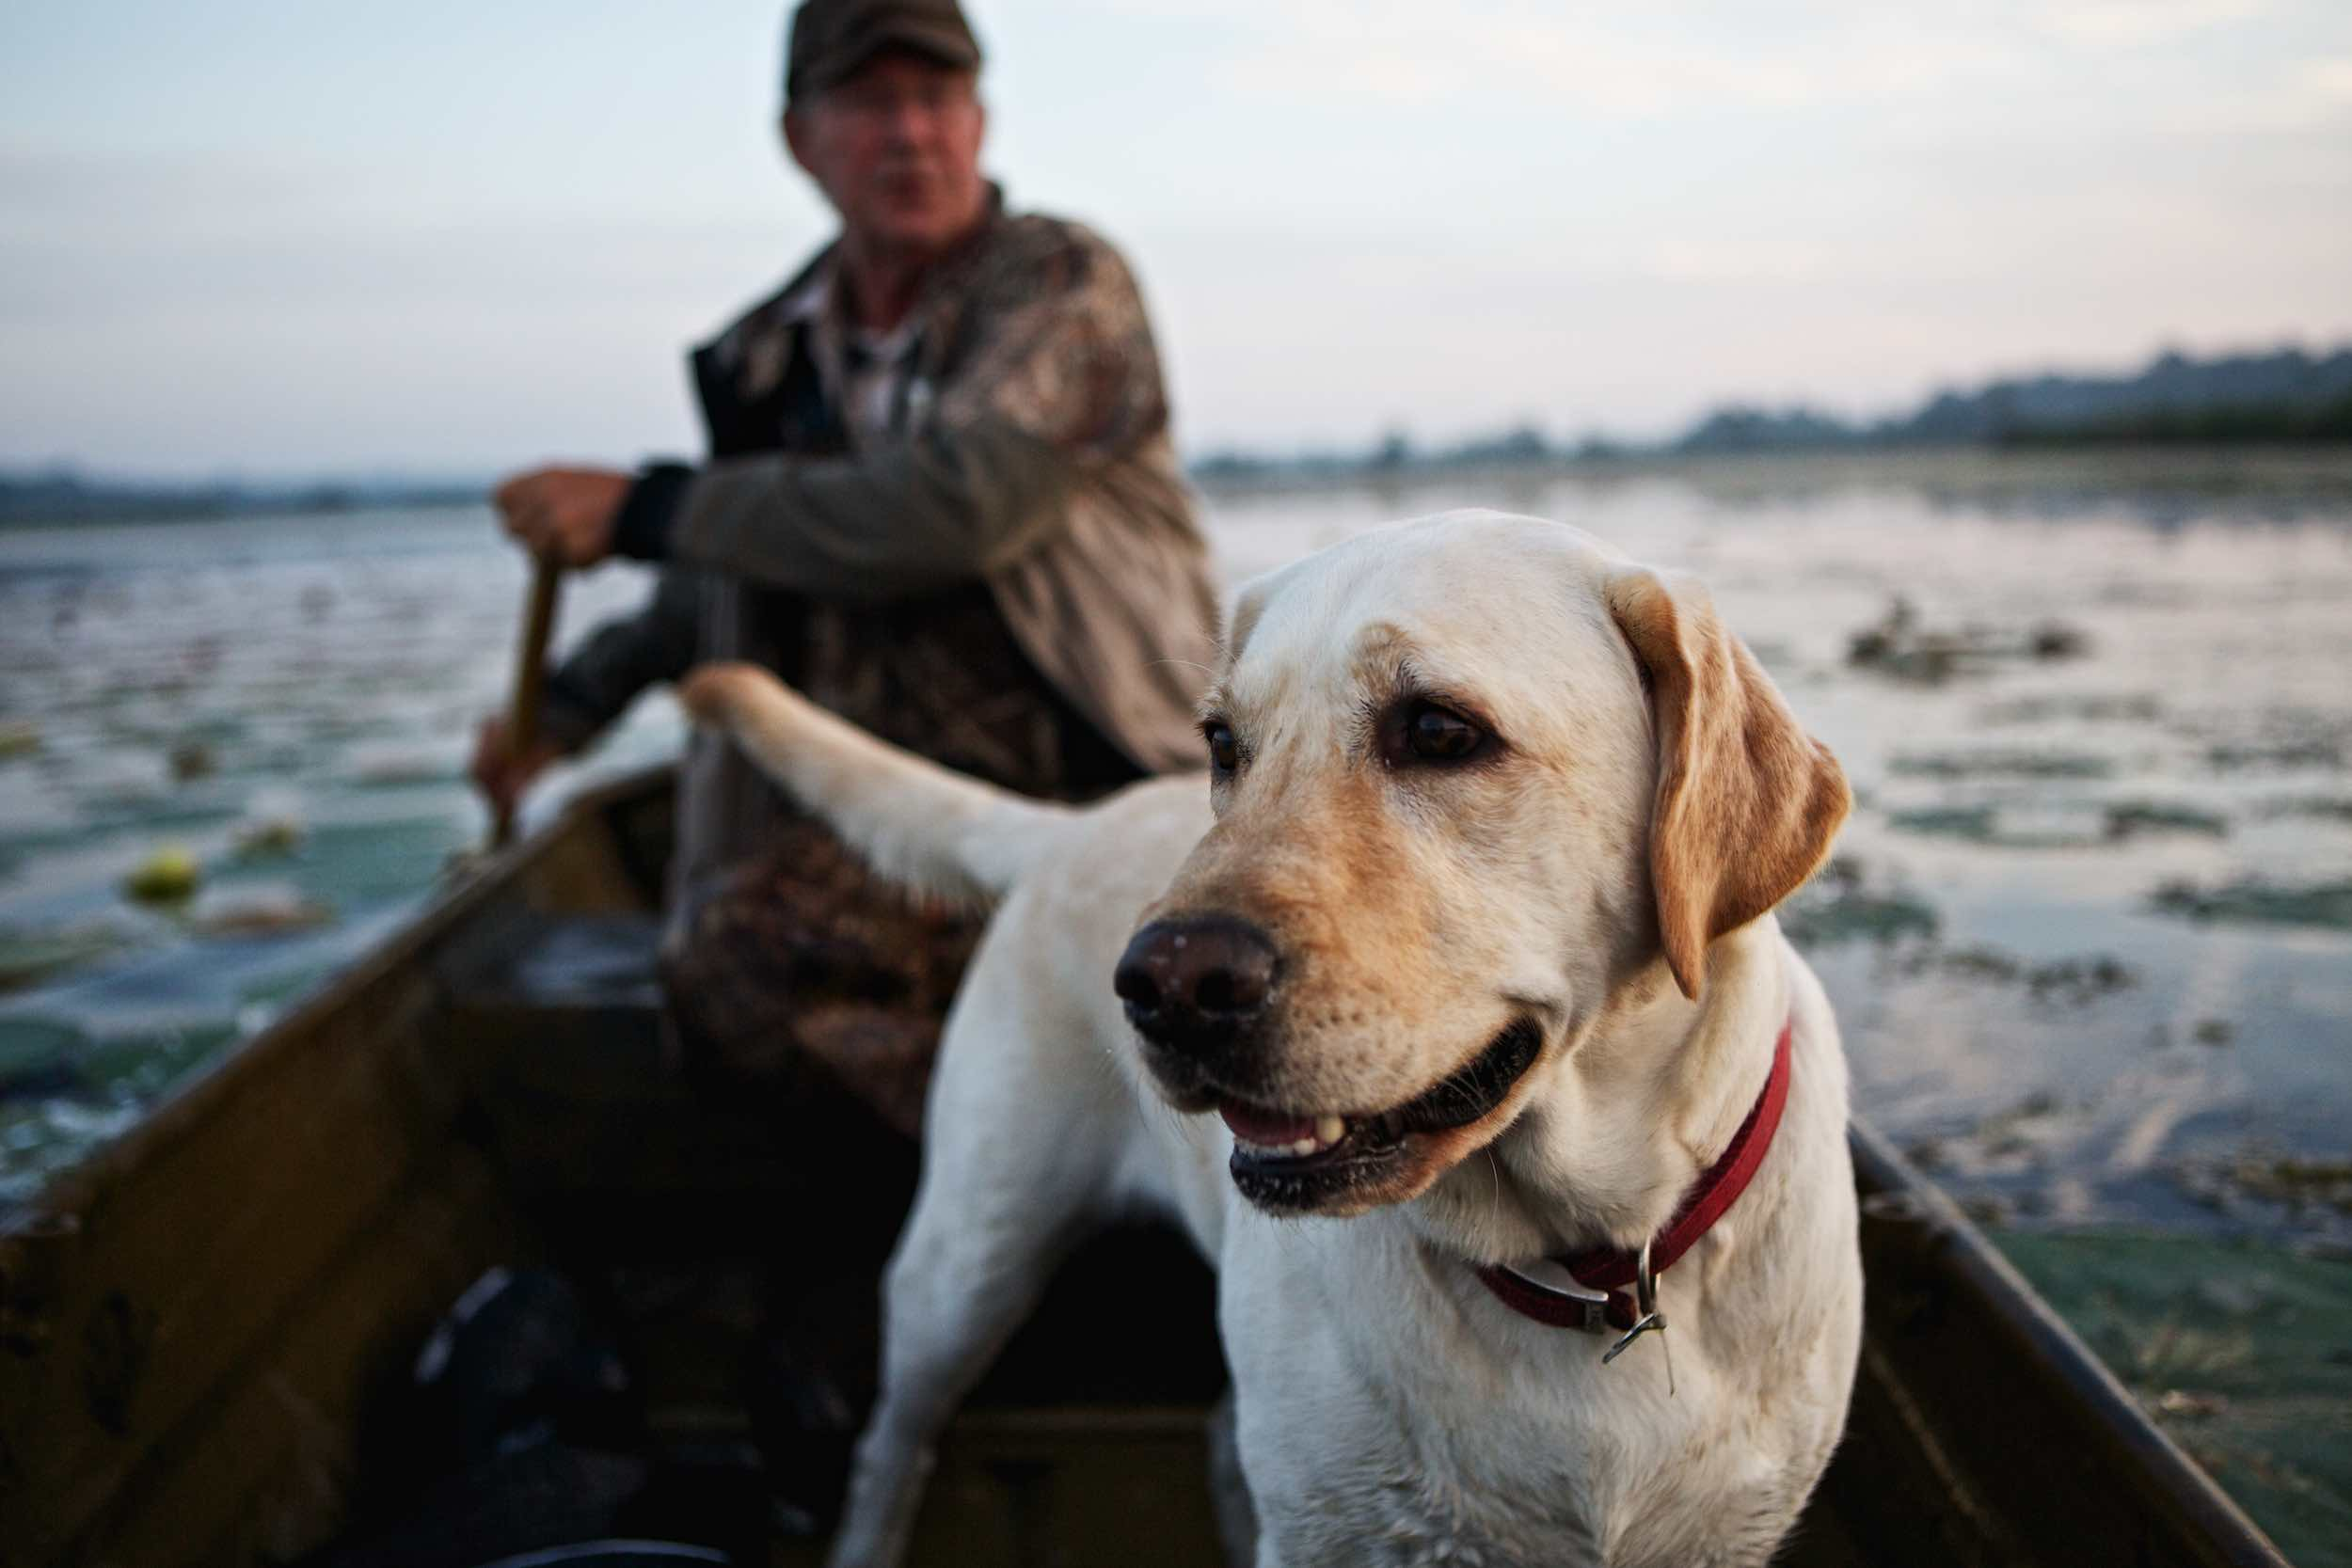 Jody Horton Photography - White lab in canoe on the water, shot for Jack Daniels Single Barrel.